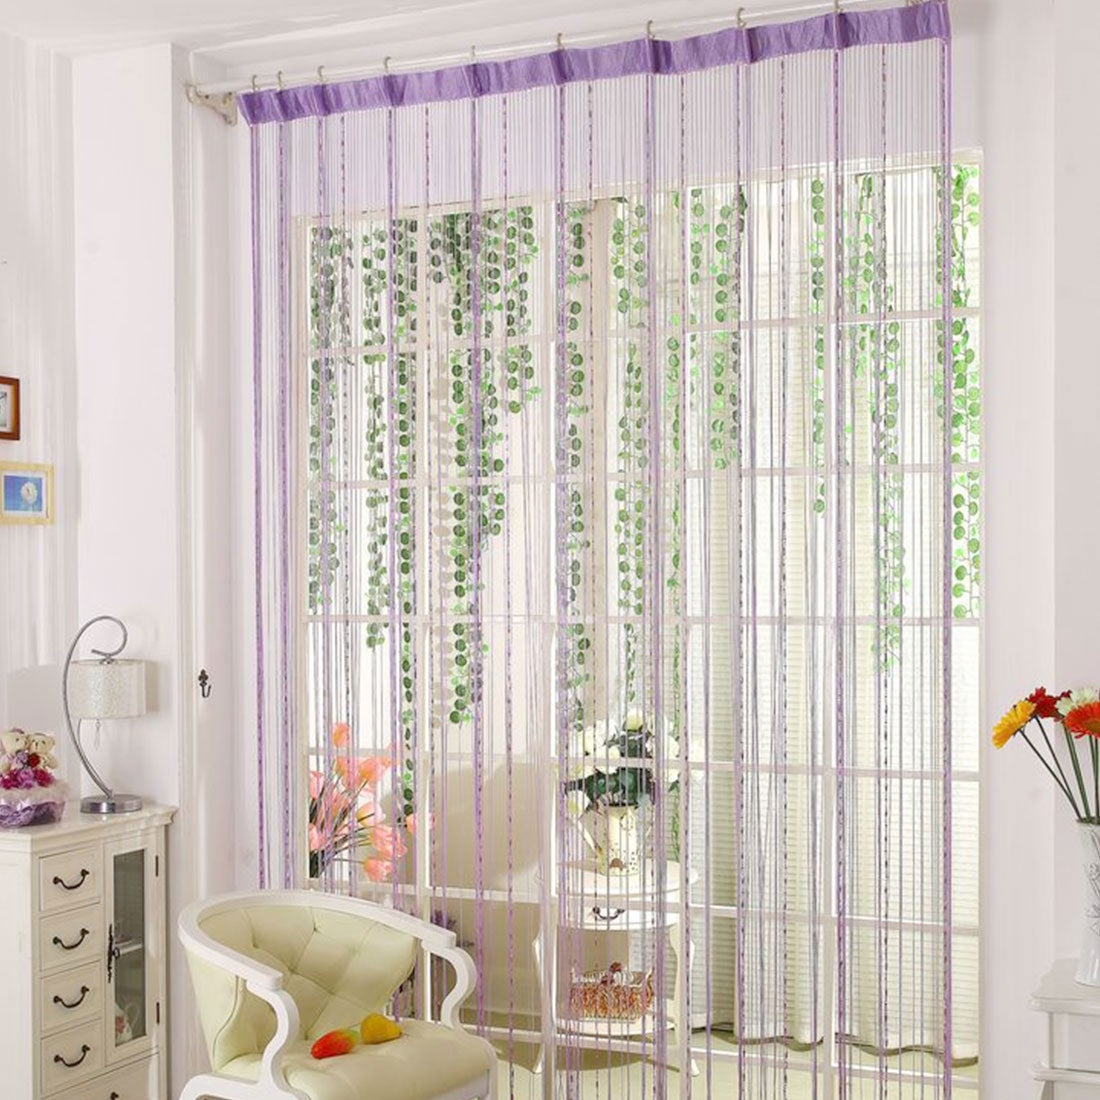 Shop Drop Beaded Chain String Curtain Voile Net Panels for Room